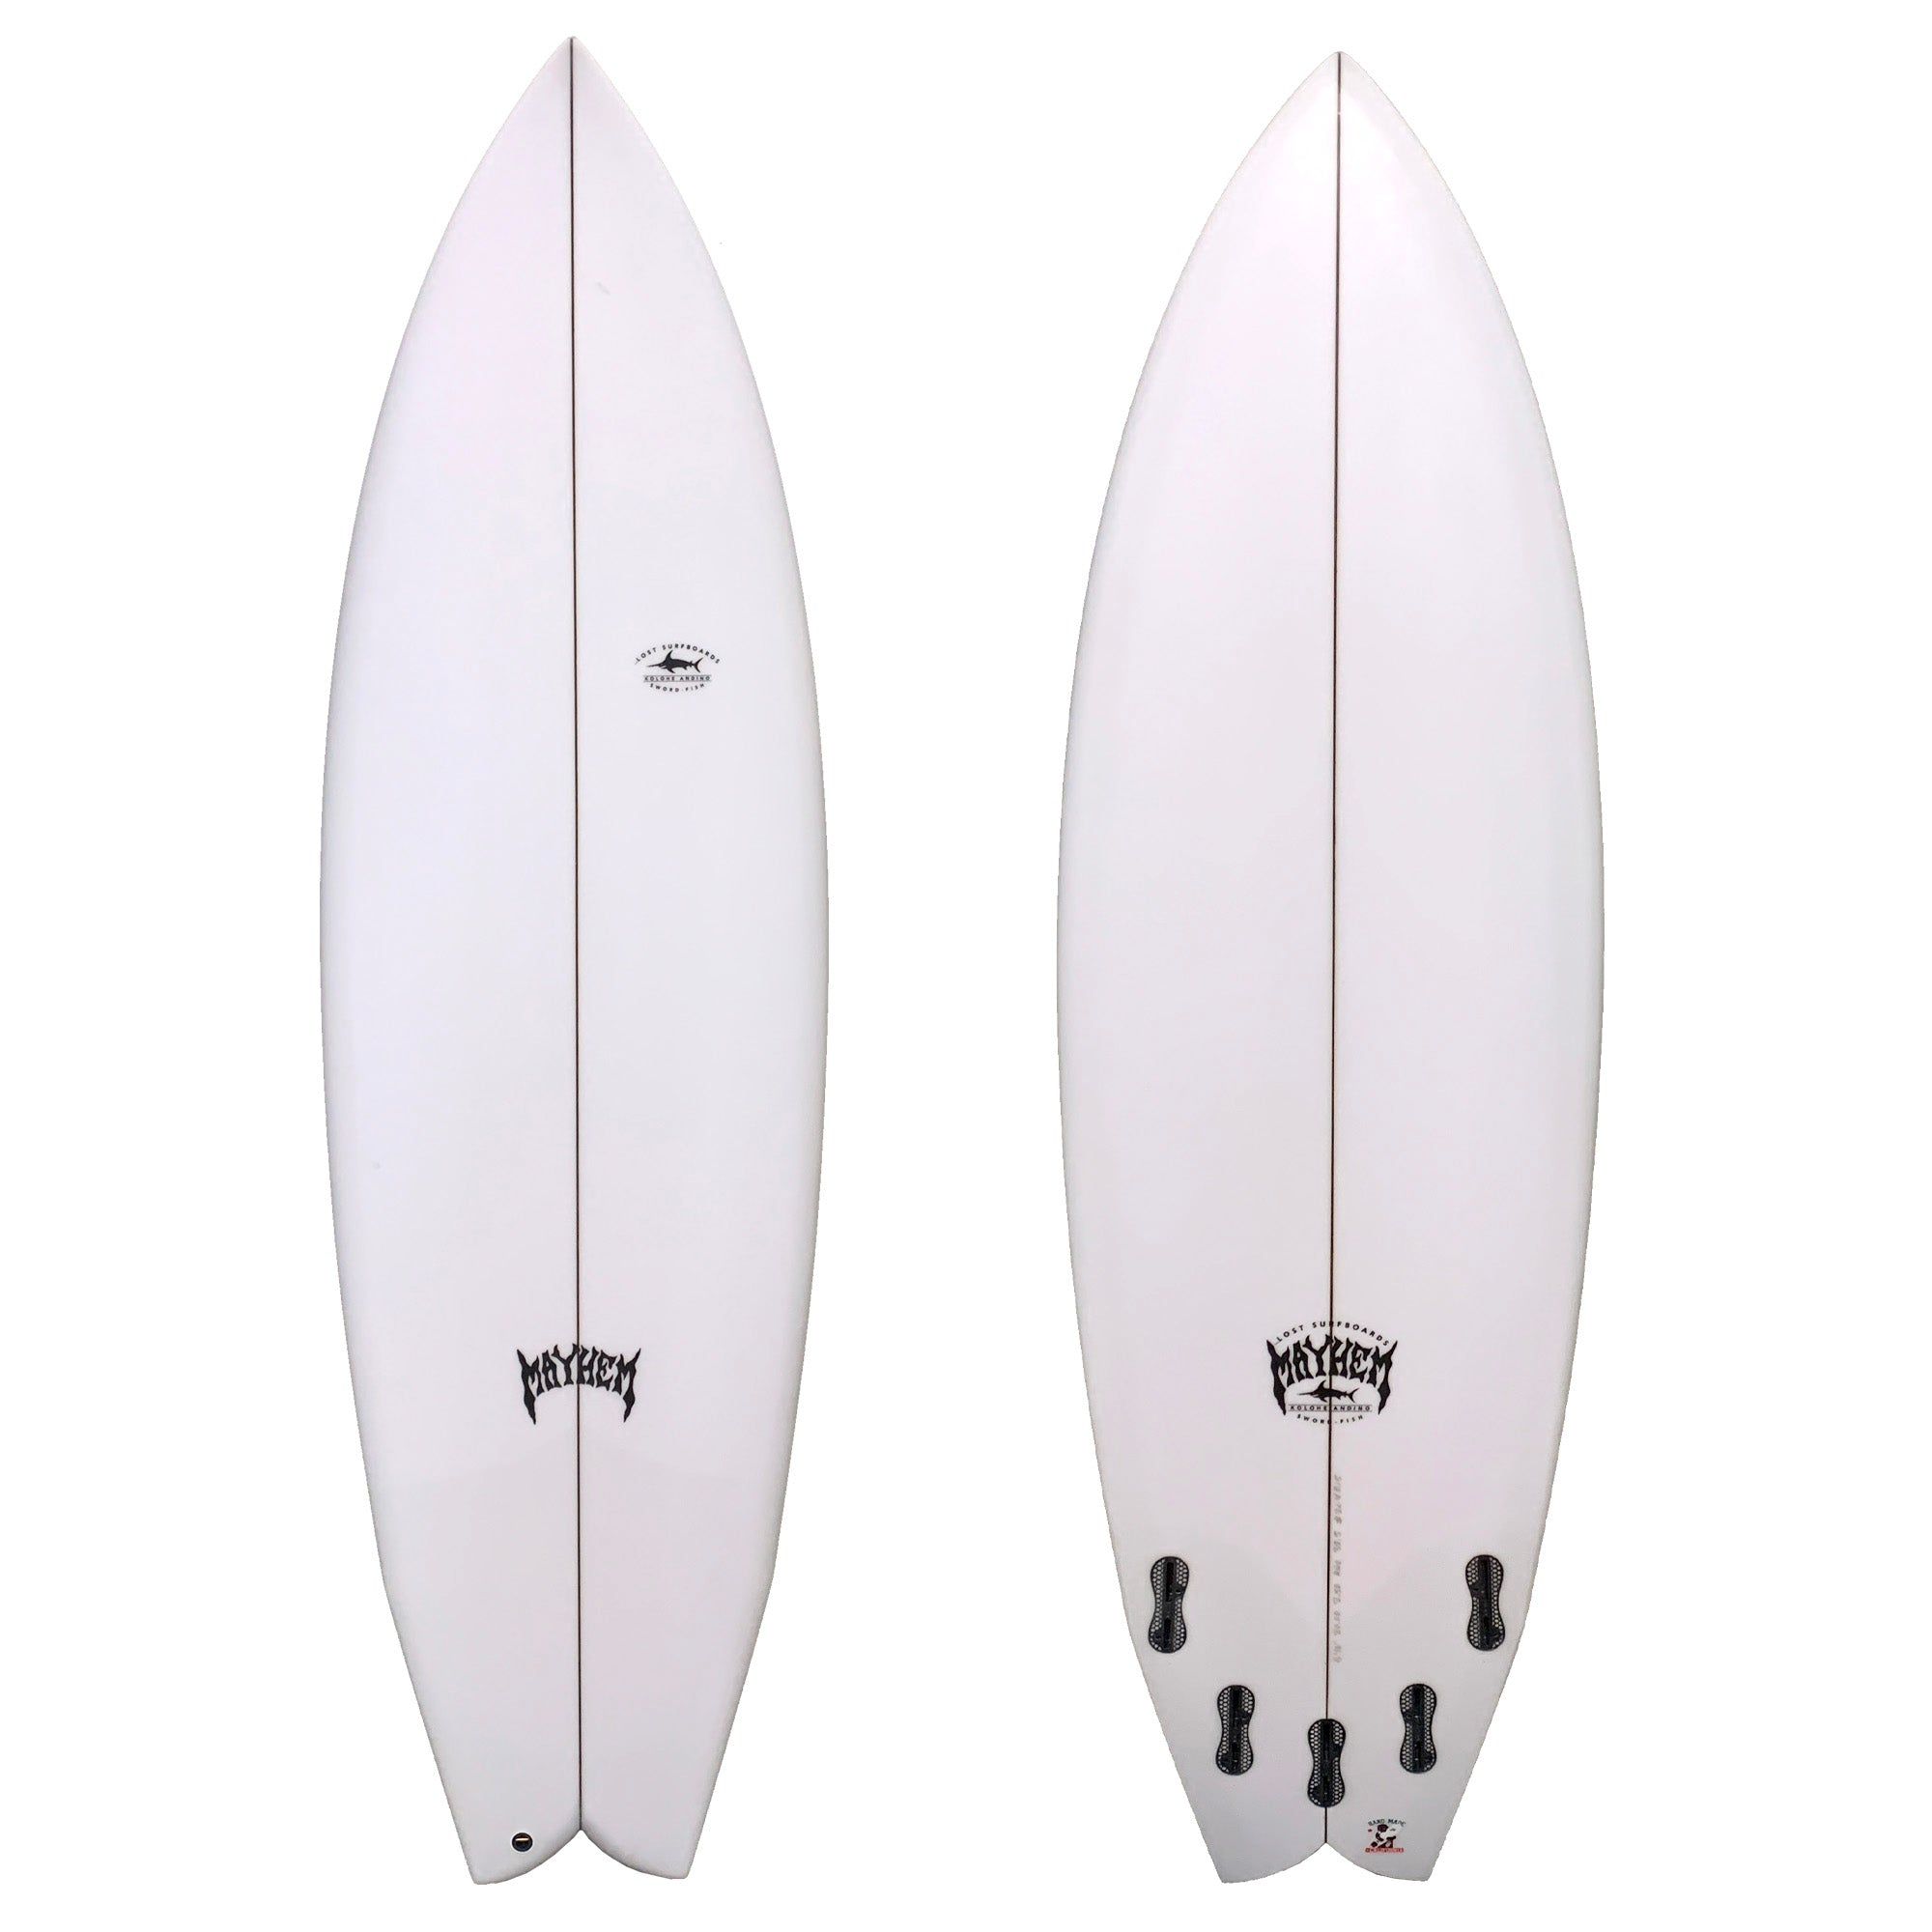 Lost Sword-Fish Surfboard - FCS II